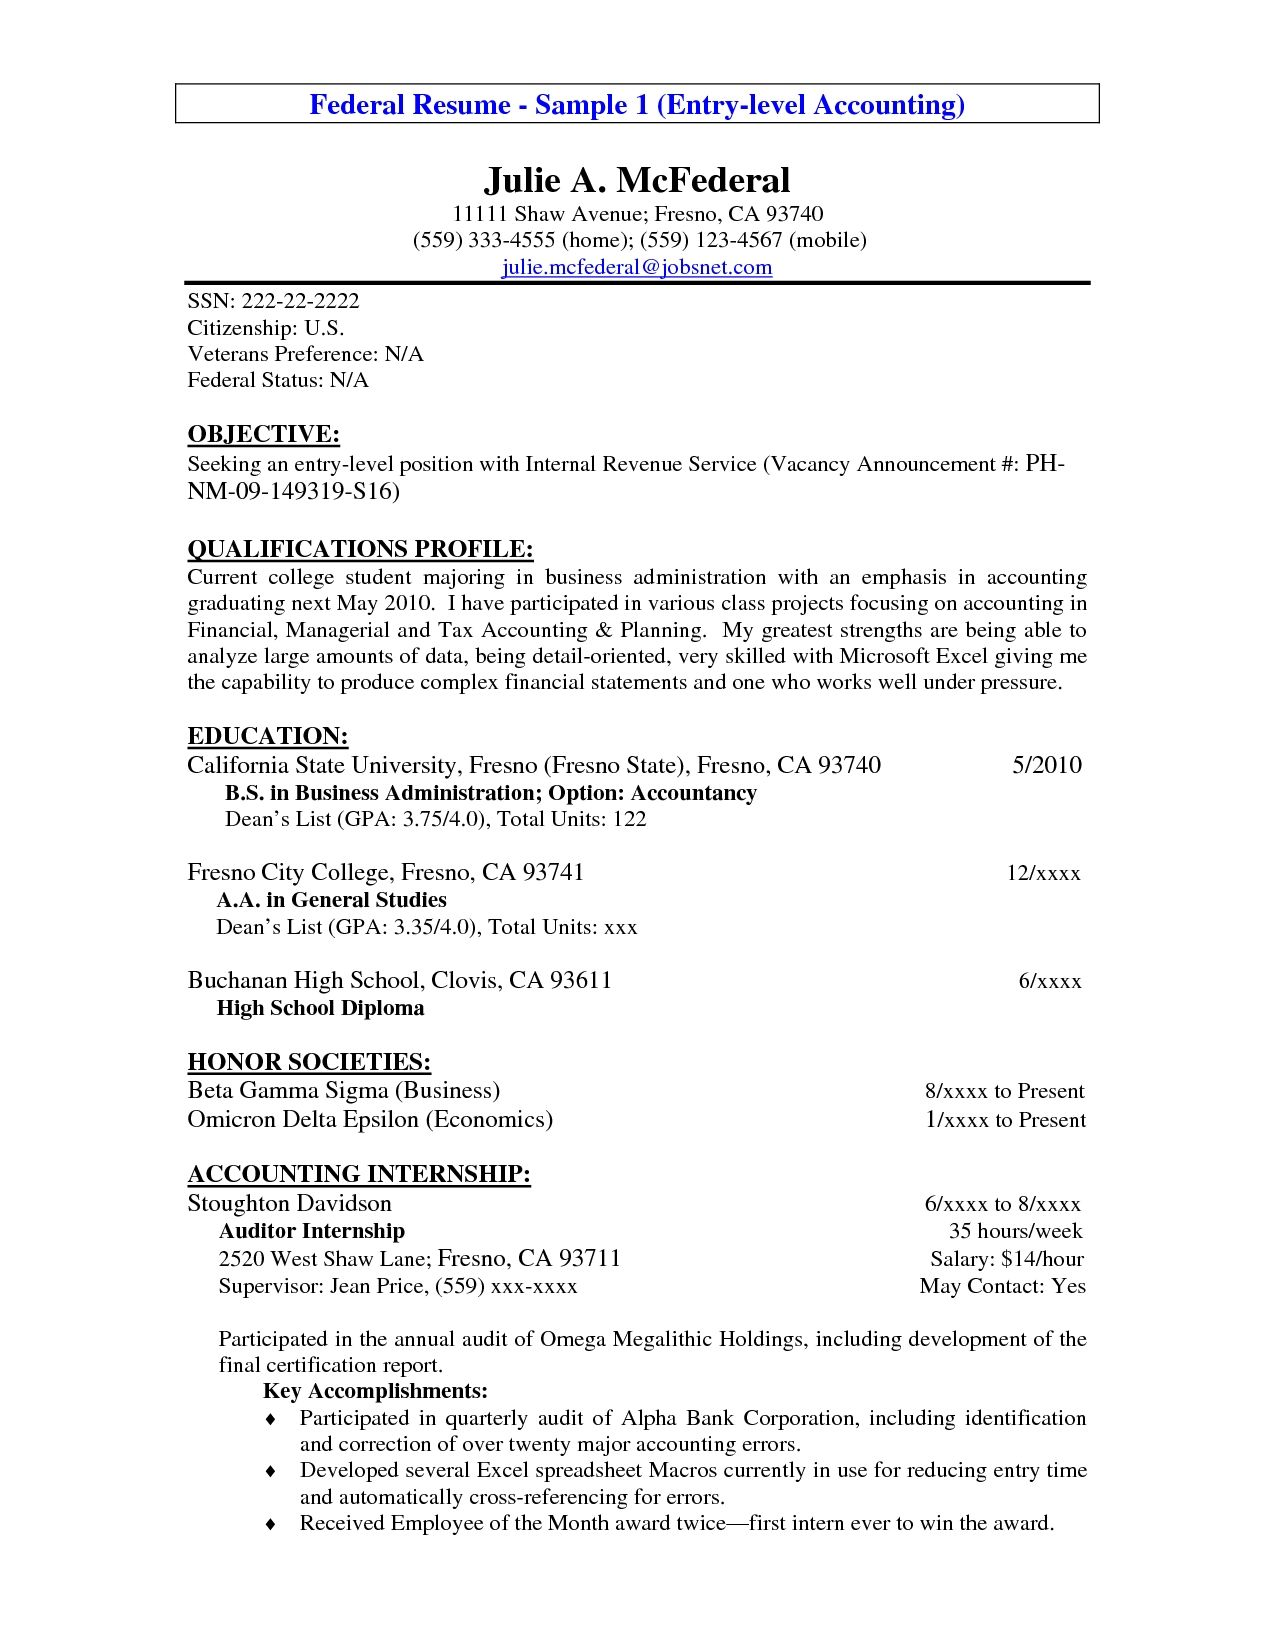 entry level resume example entry level accounting resume sample gallery photos - Entry Level Job Resume Examples